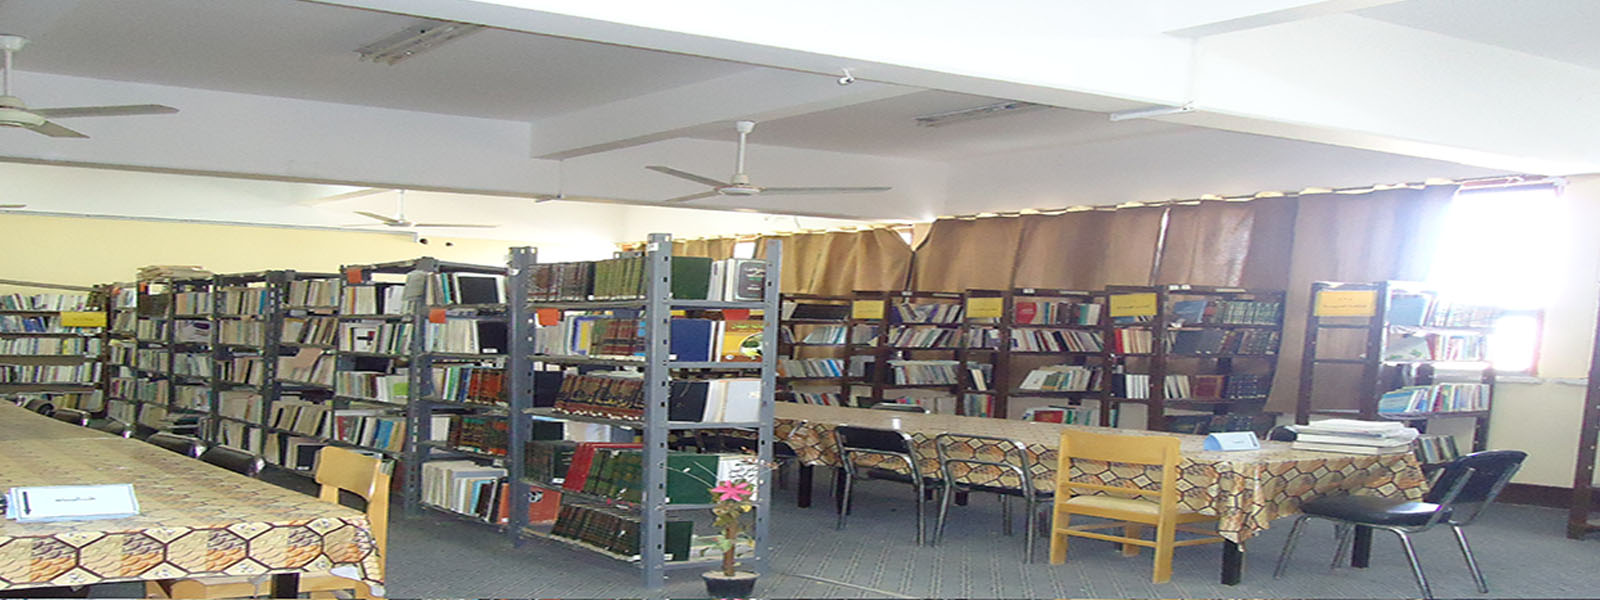 The Faculty Library